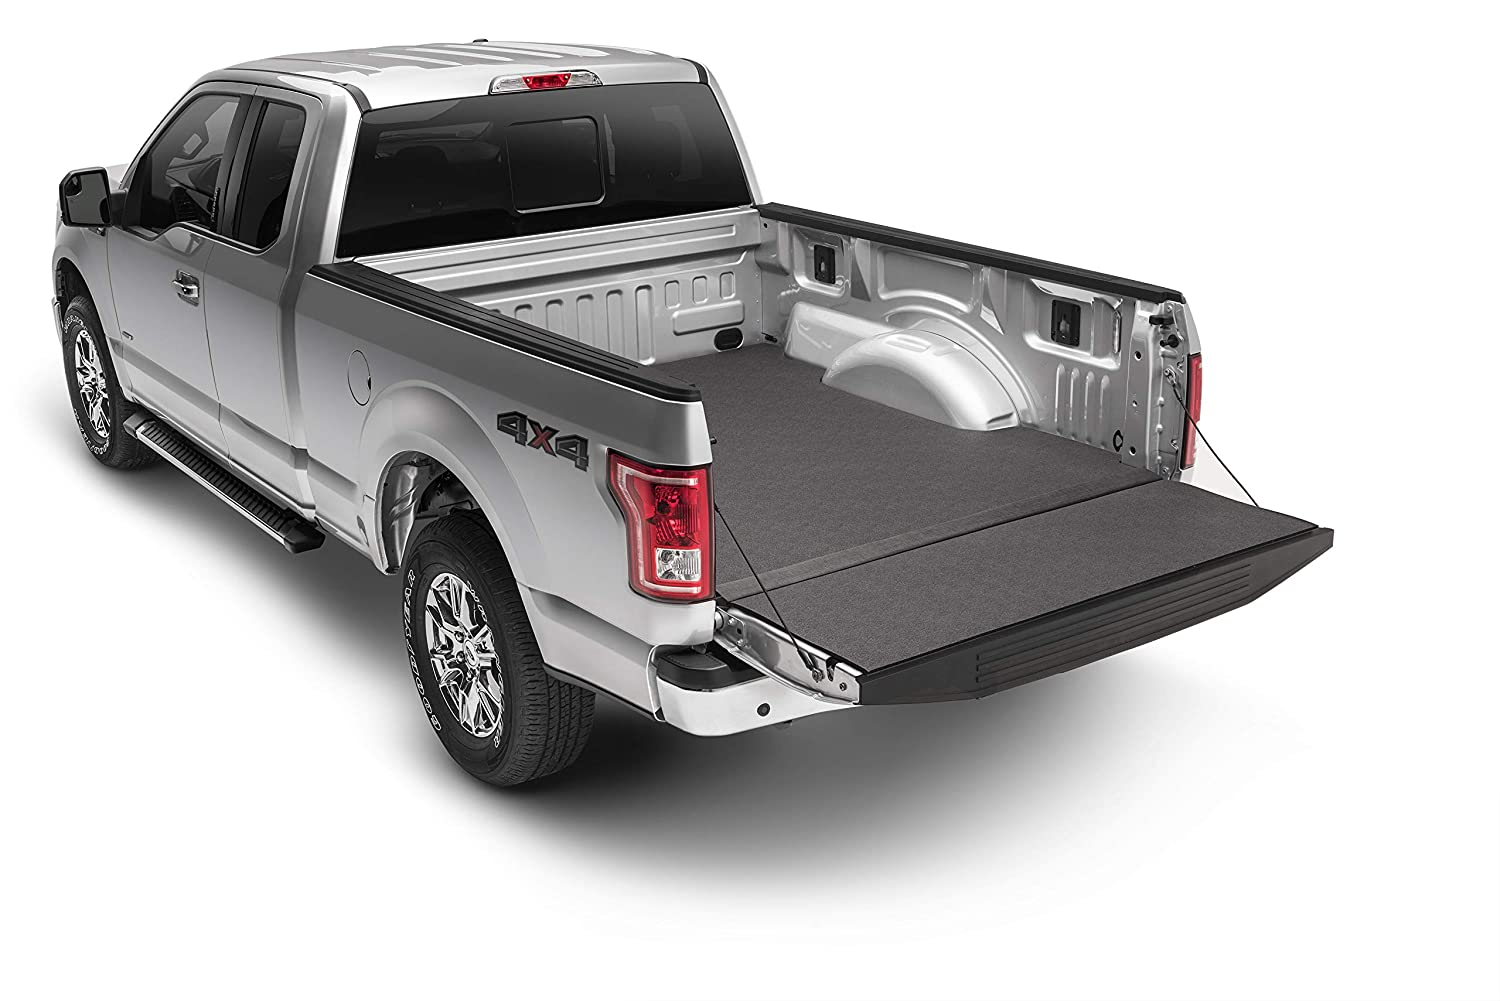 Bedrug IMT19SBS Non (Impact MAT for Spray Liner 19+ Dodge RAM 6.4' Bed)